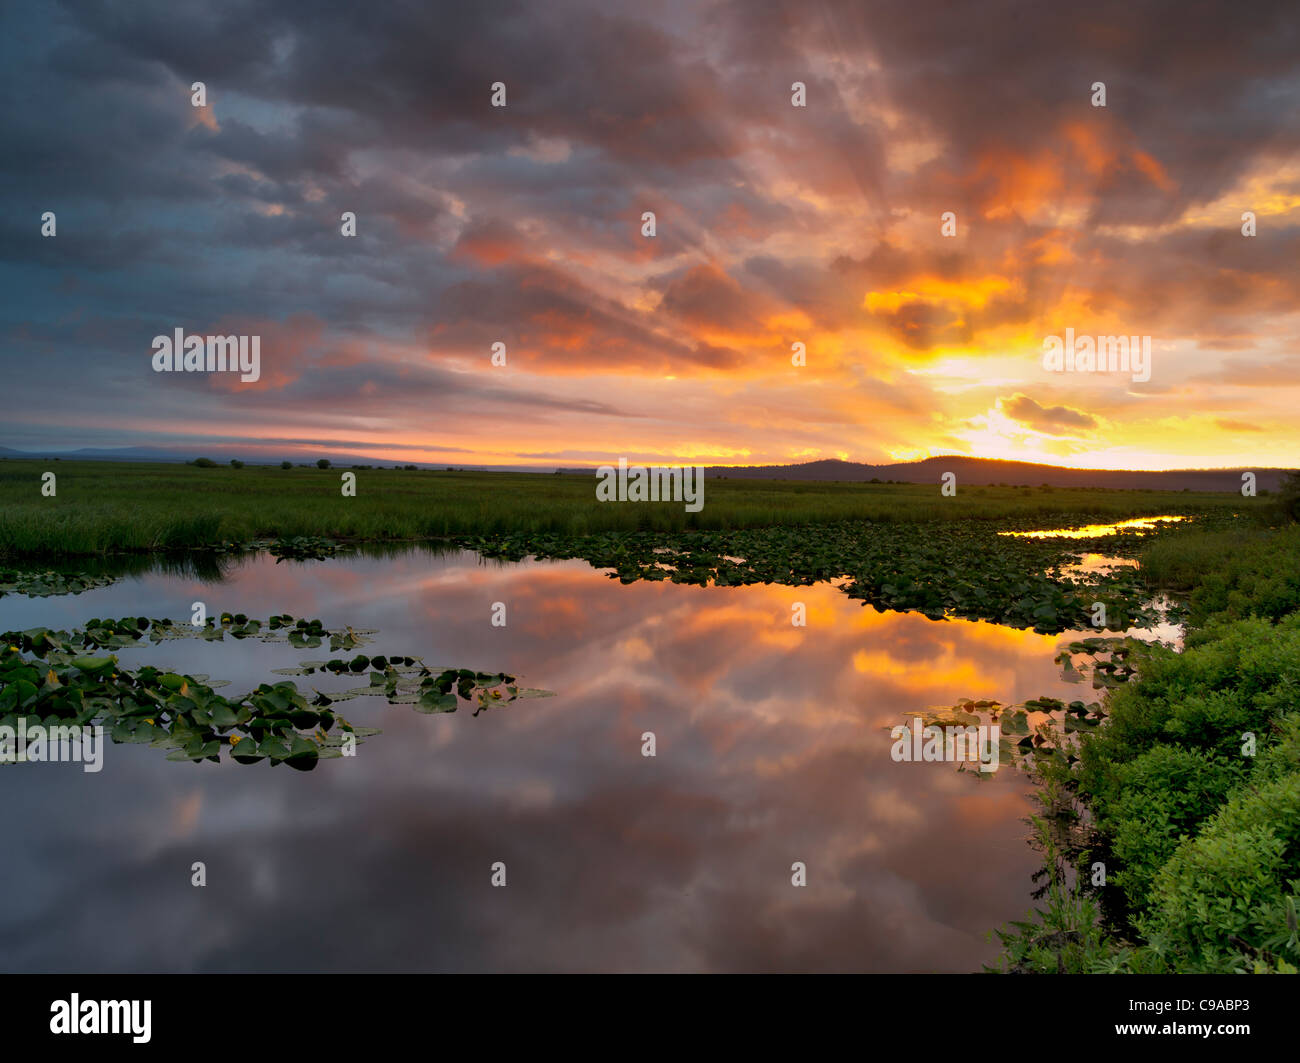 Sunrise at Klamath Marsh National Wildlife Refuge, Oregon - Stock Image